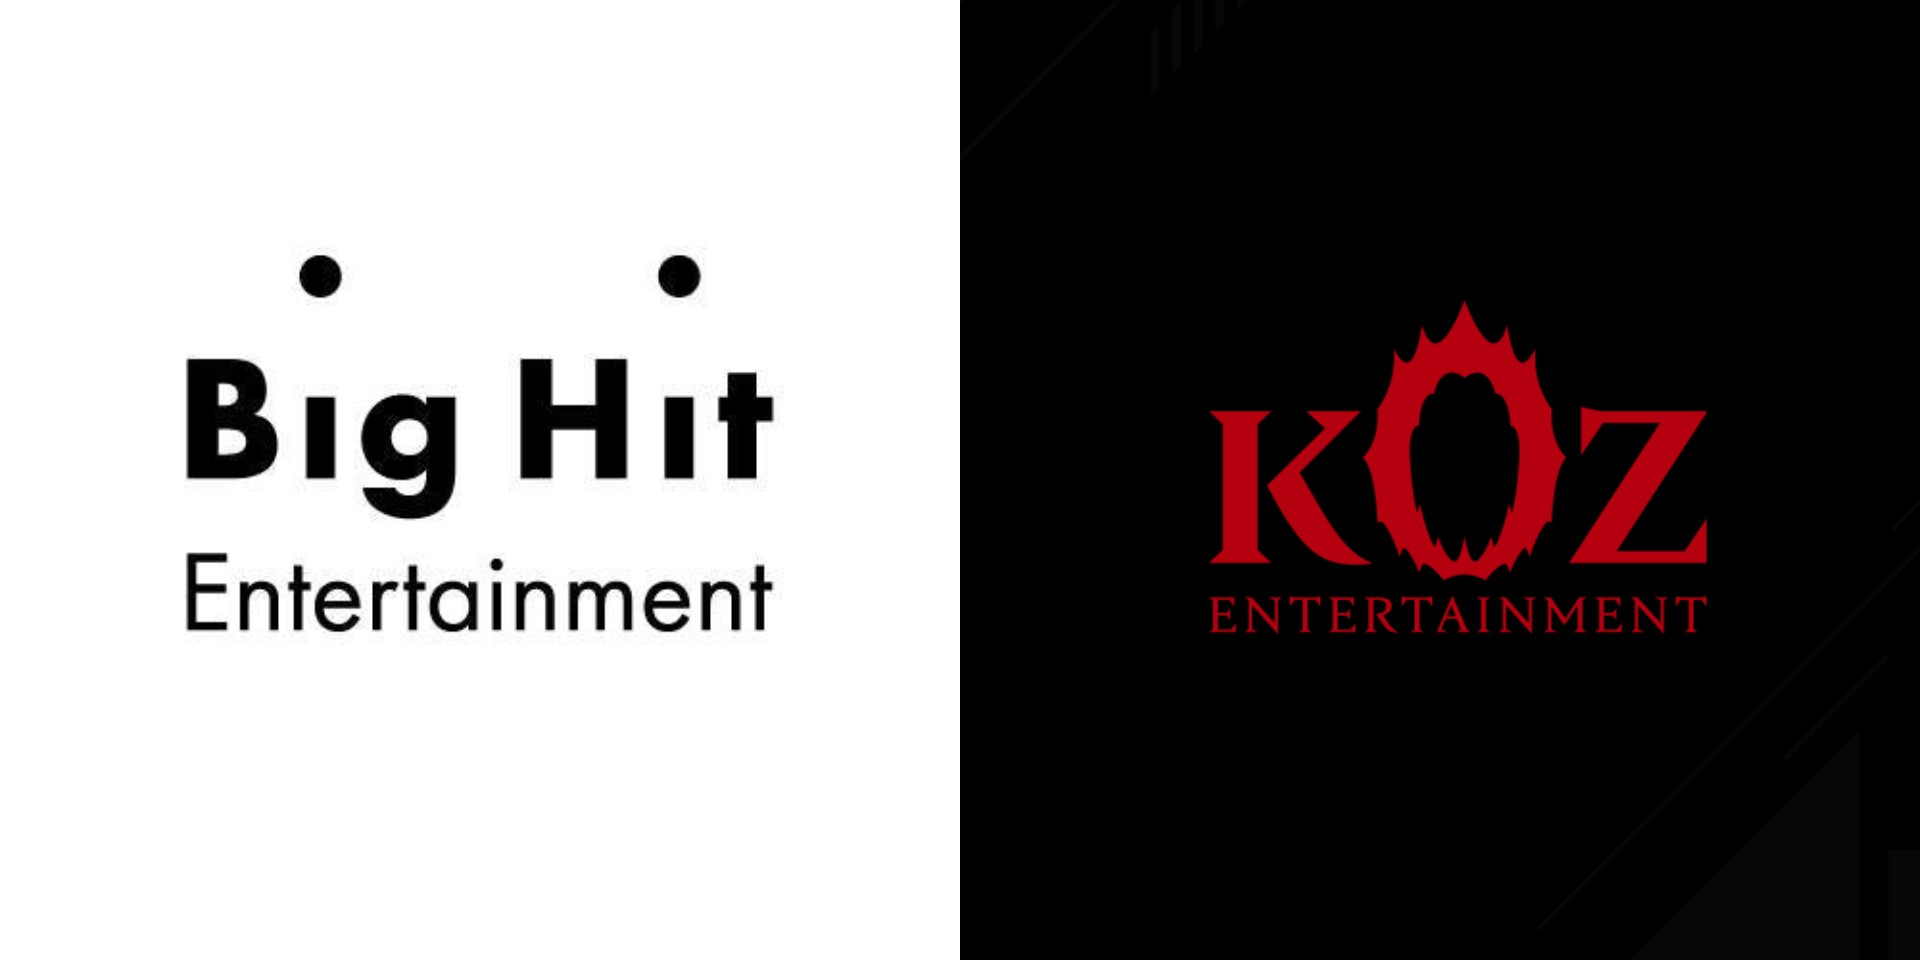 Big Hit Entertainment is acquiring KOZ Entertainment, a hip-hop label founded by Block B's Zico